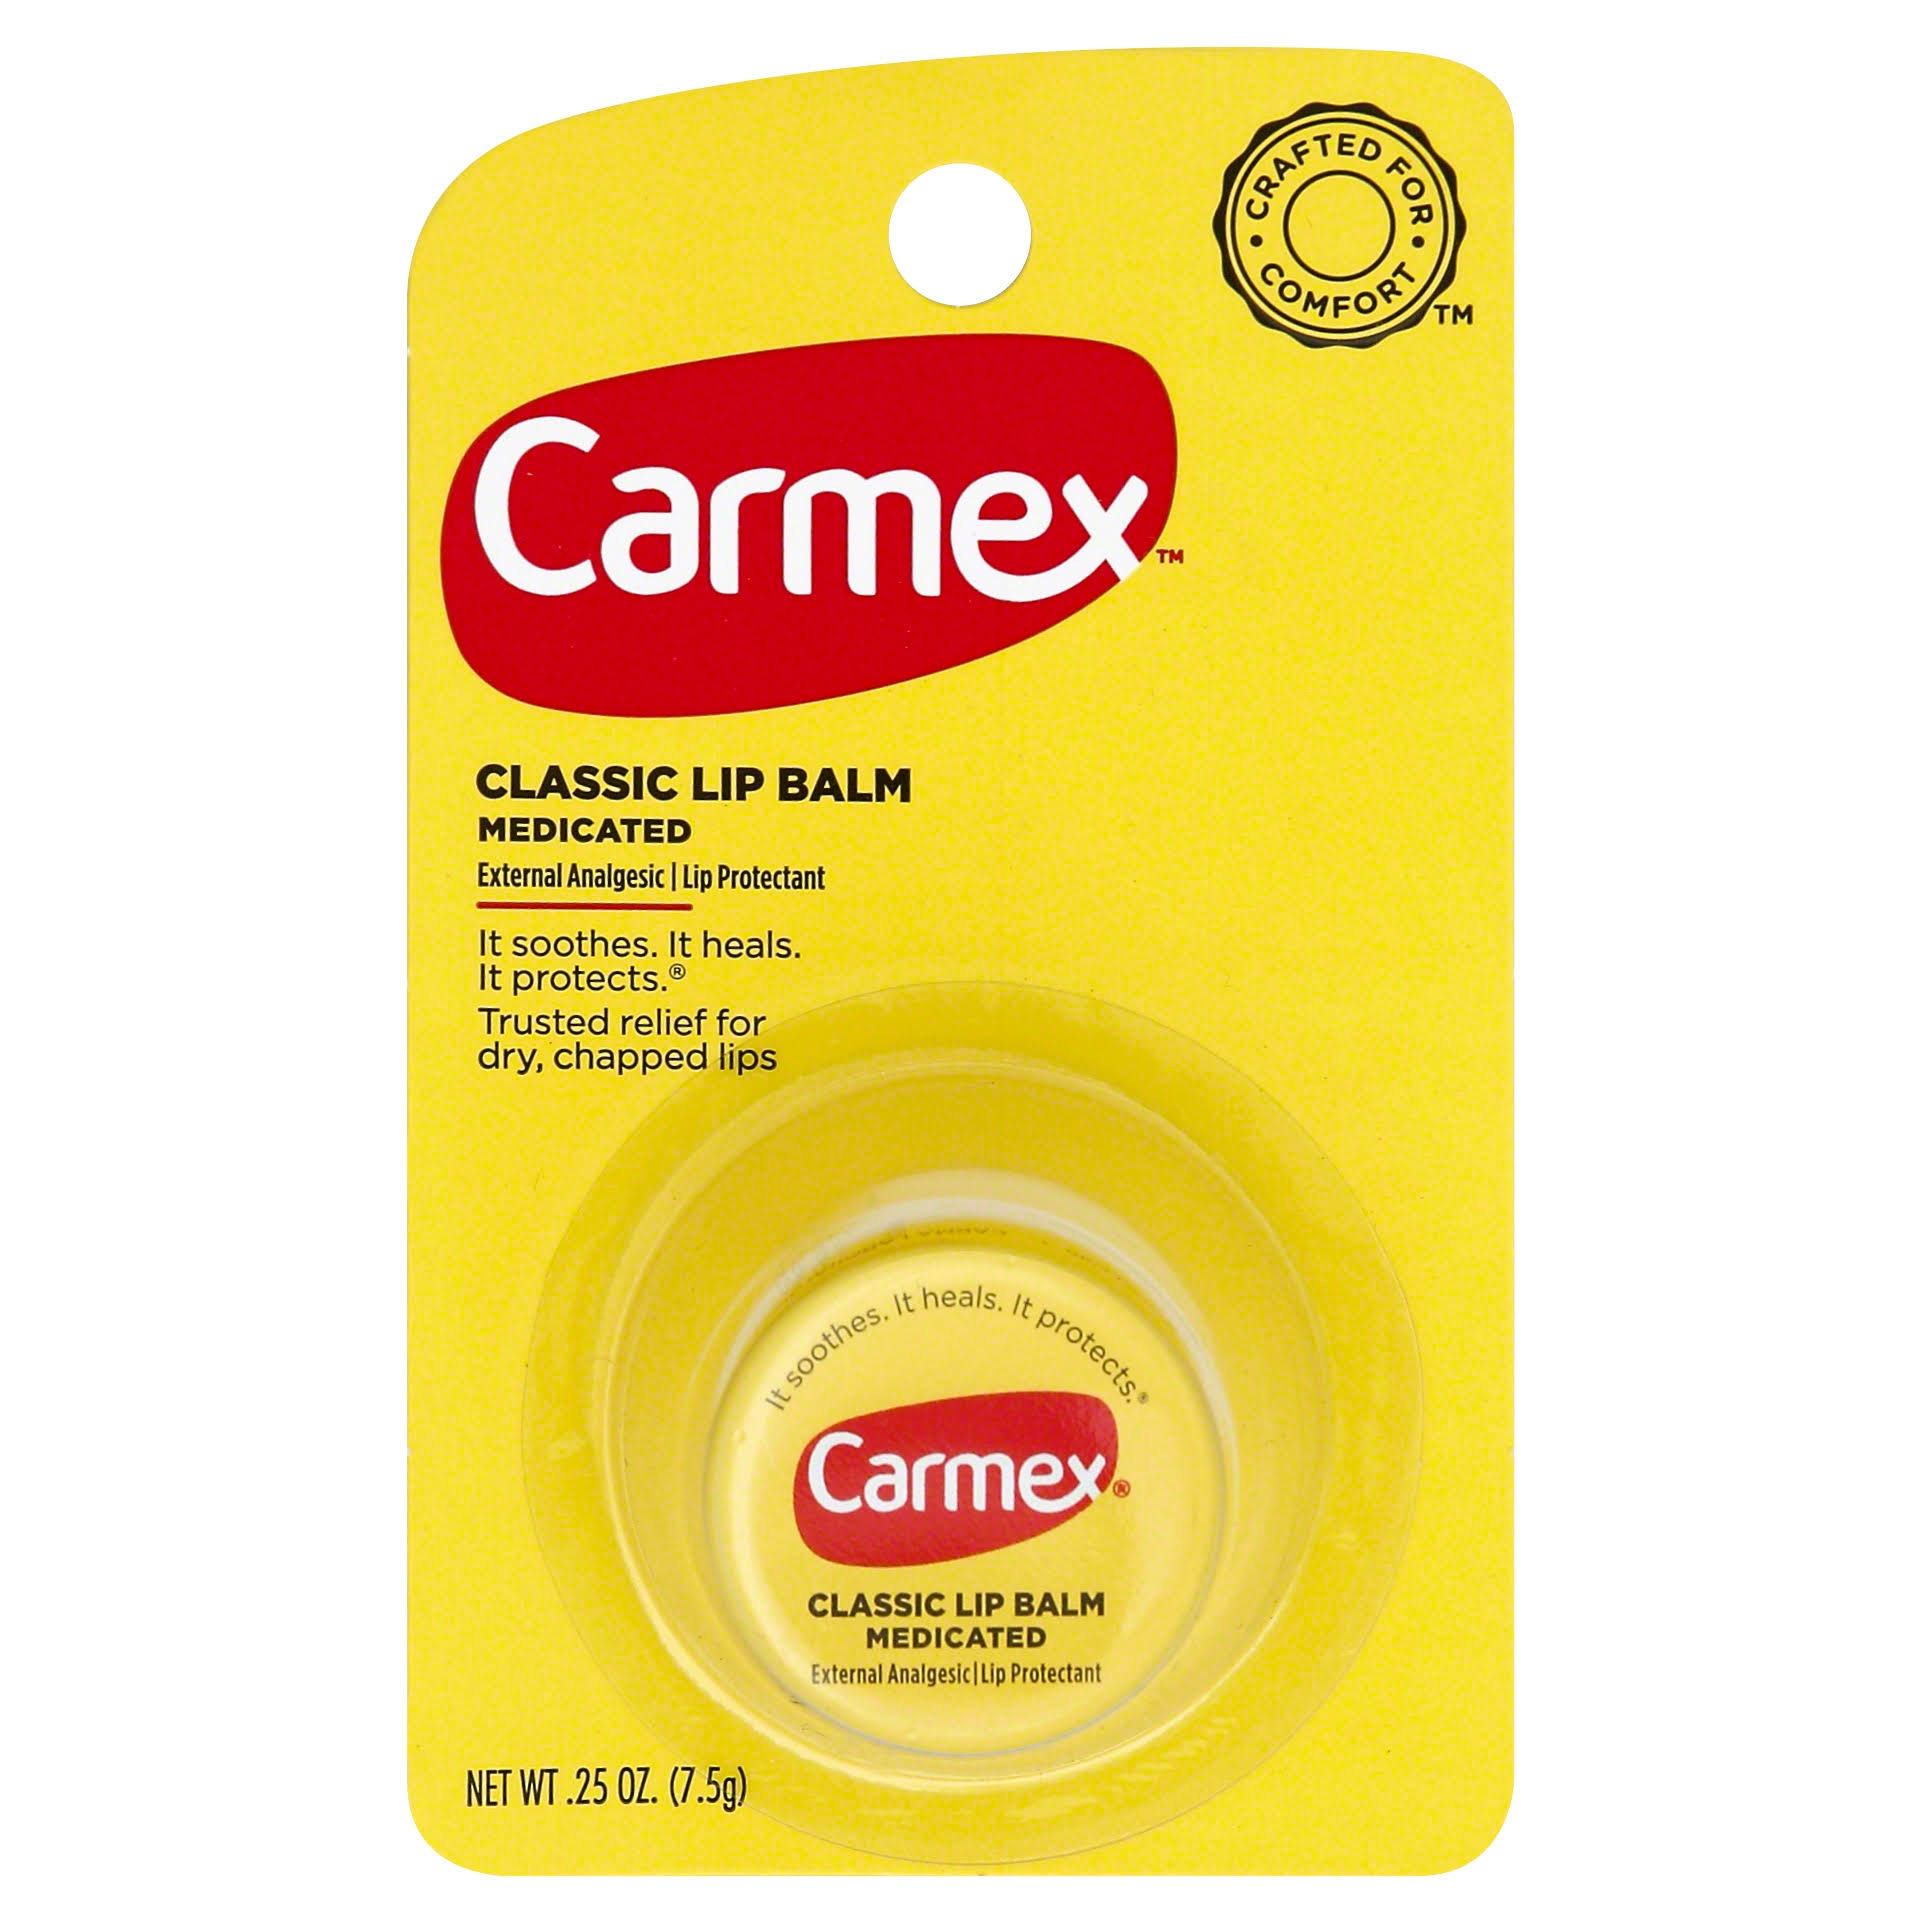 Carmex Classic Lip Balm Medicated - 0.25oz